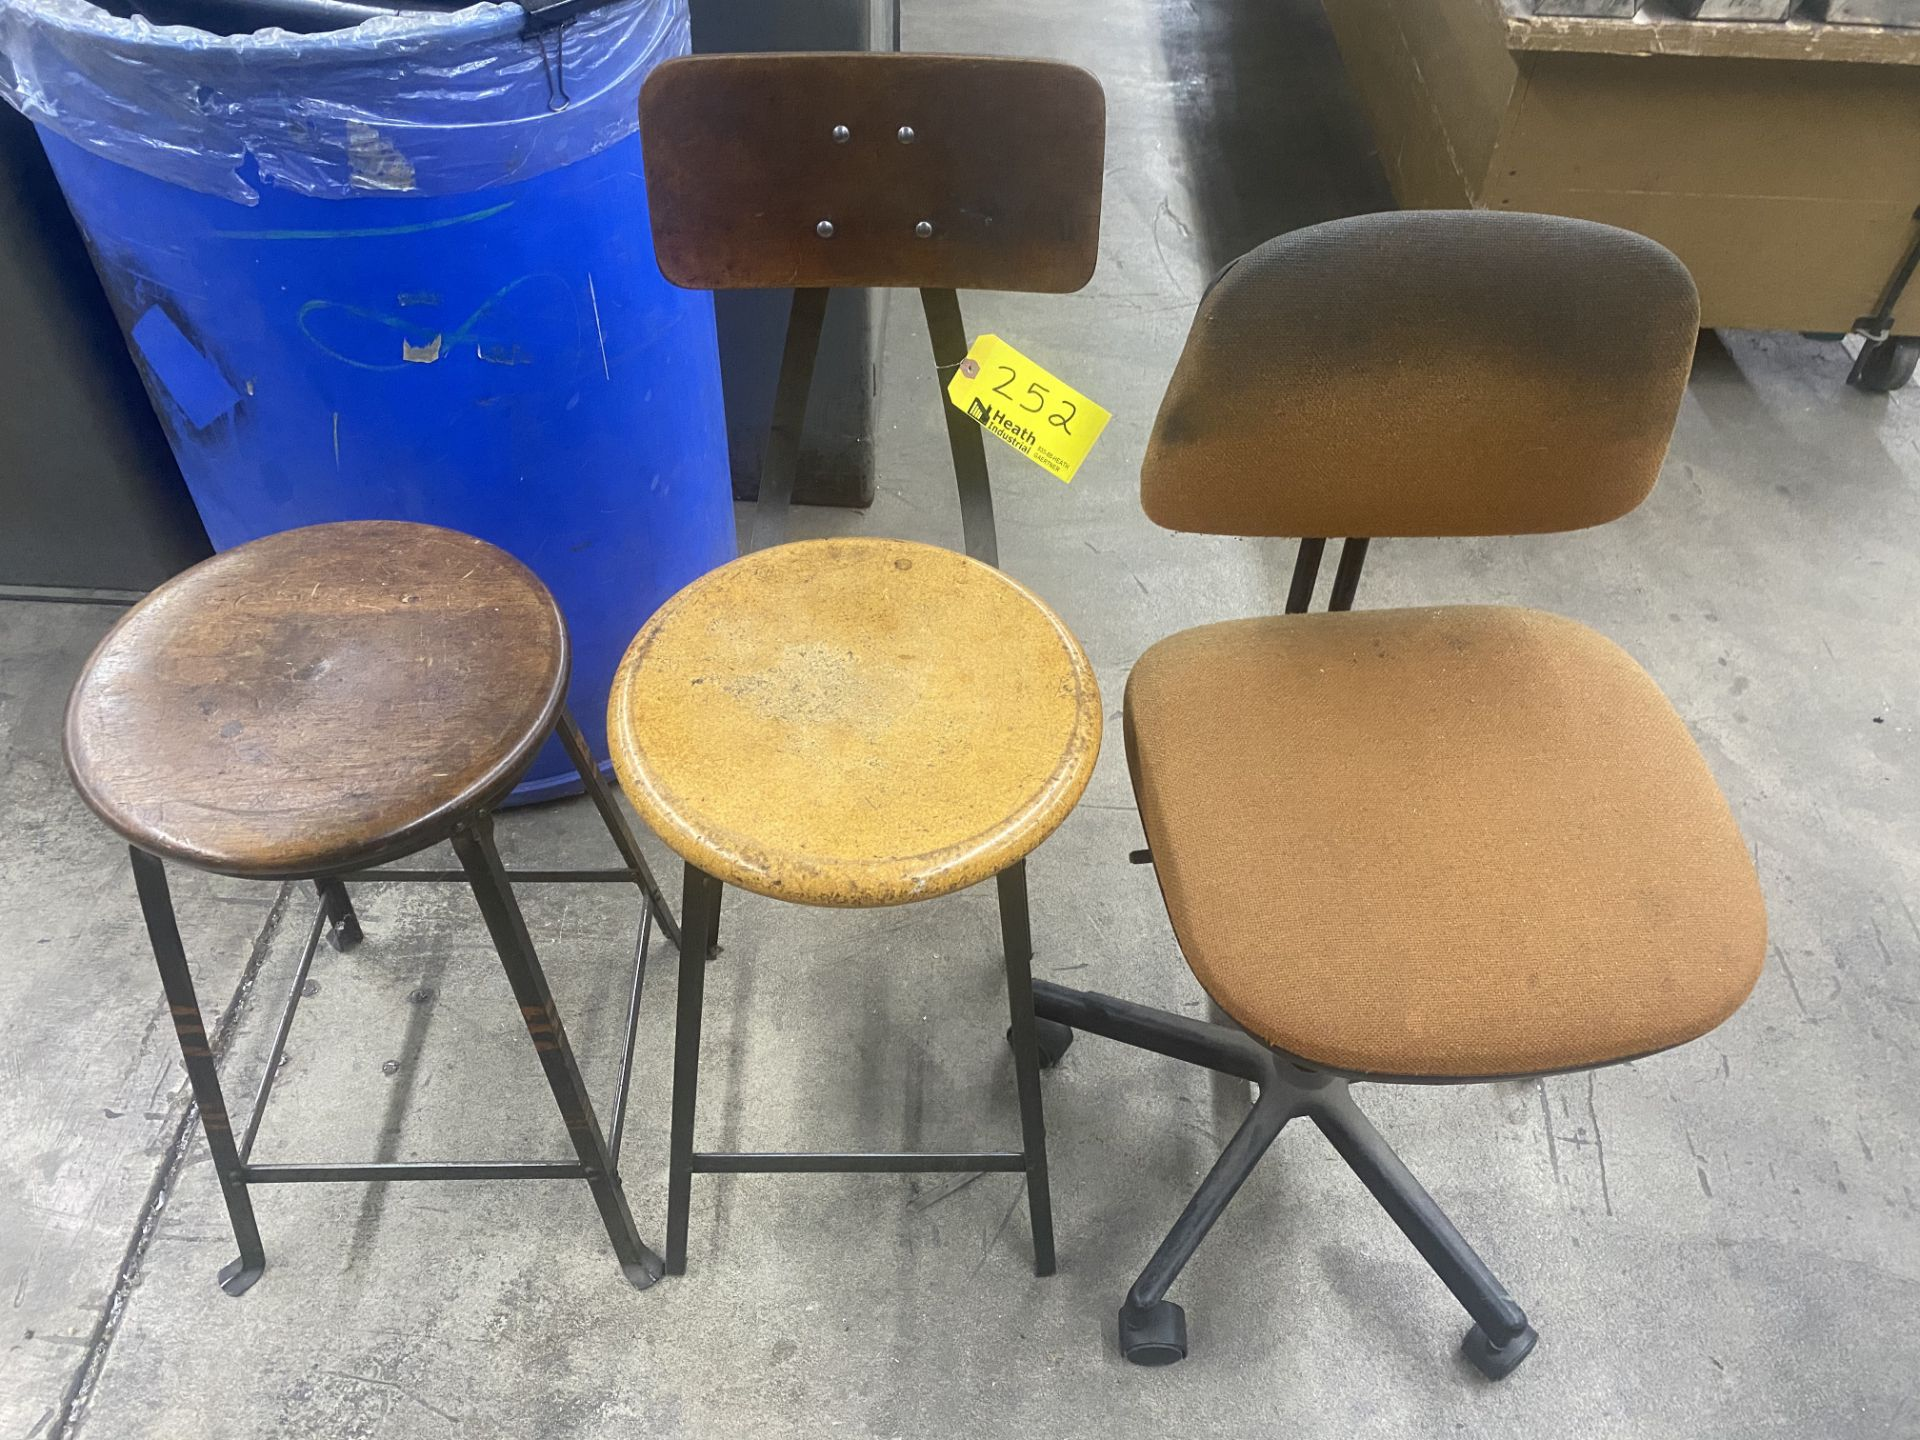 (3) ASSORTED CHAIRS